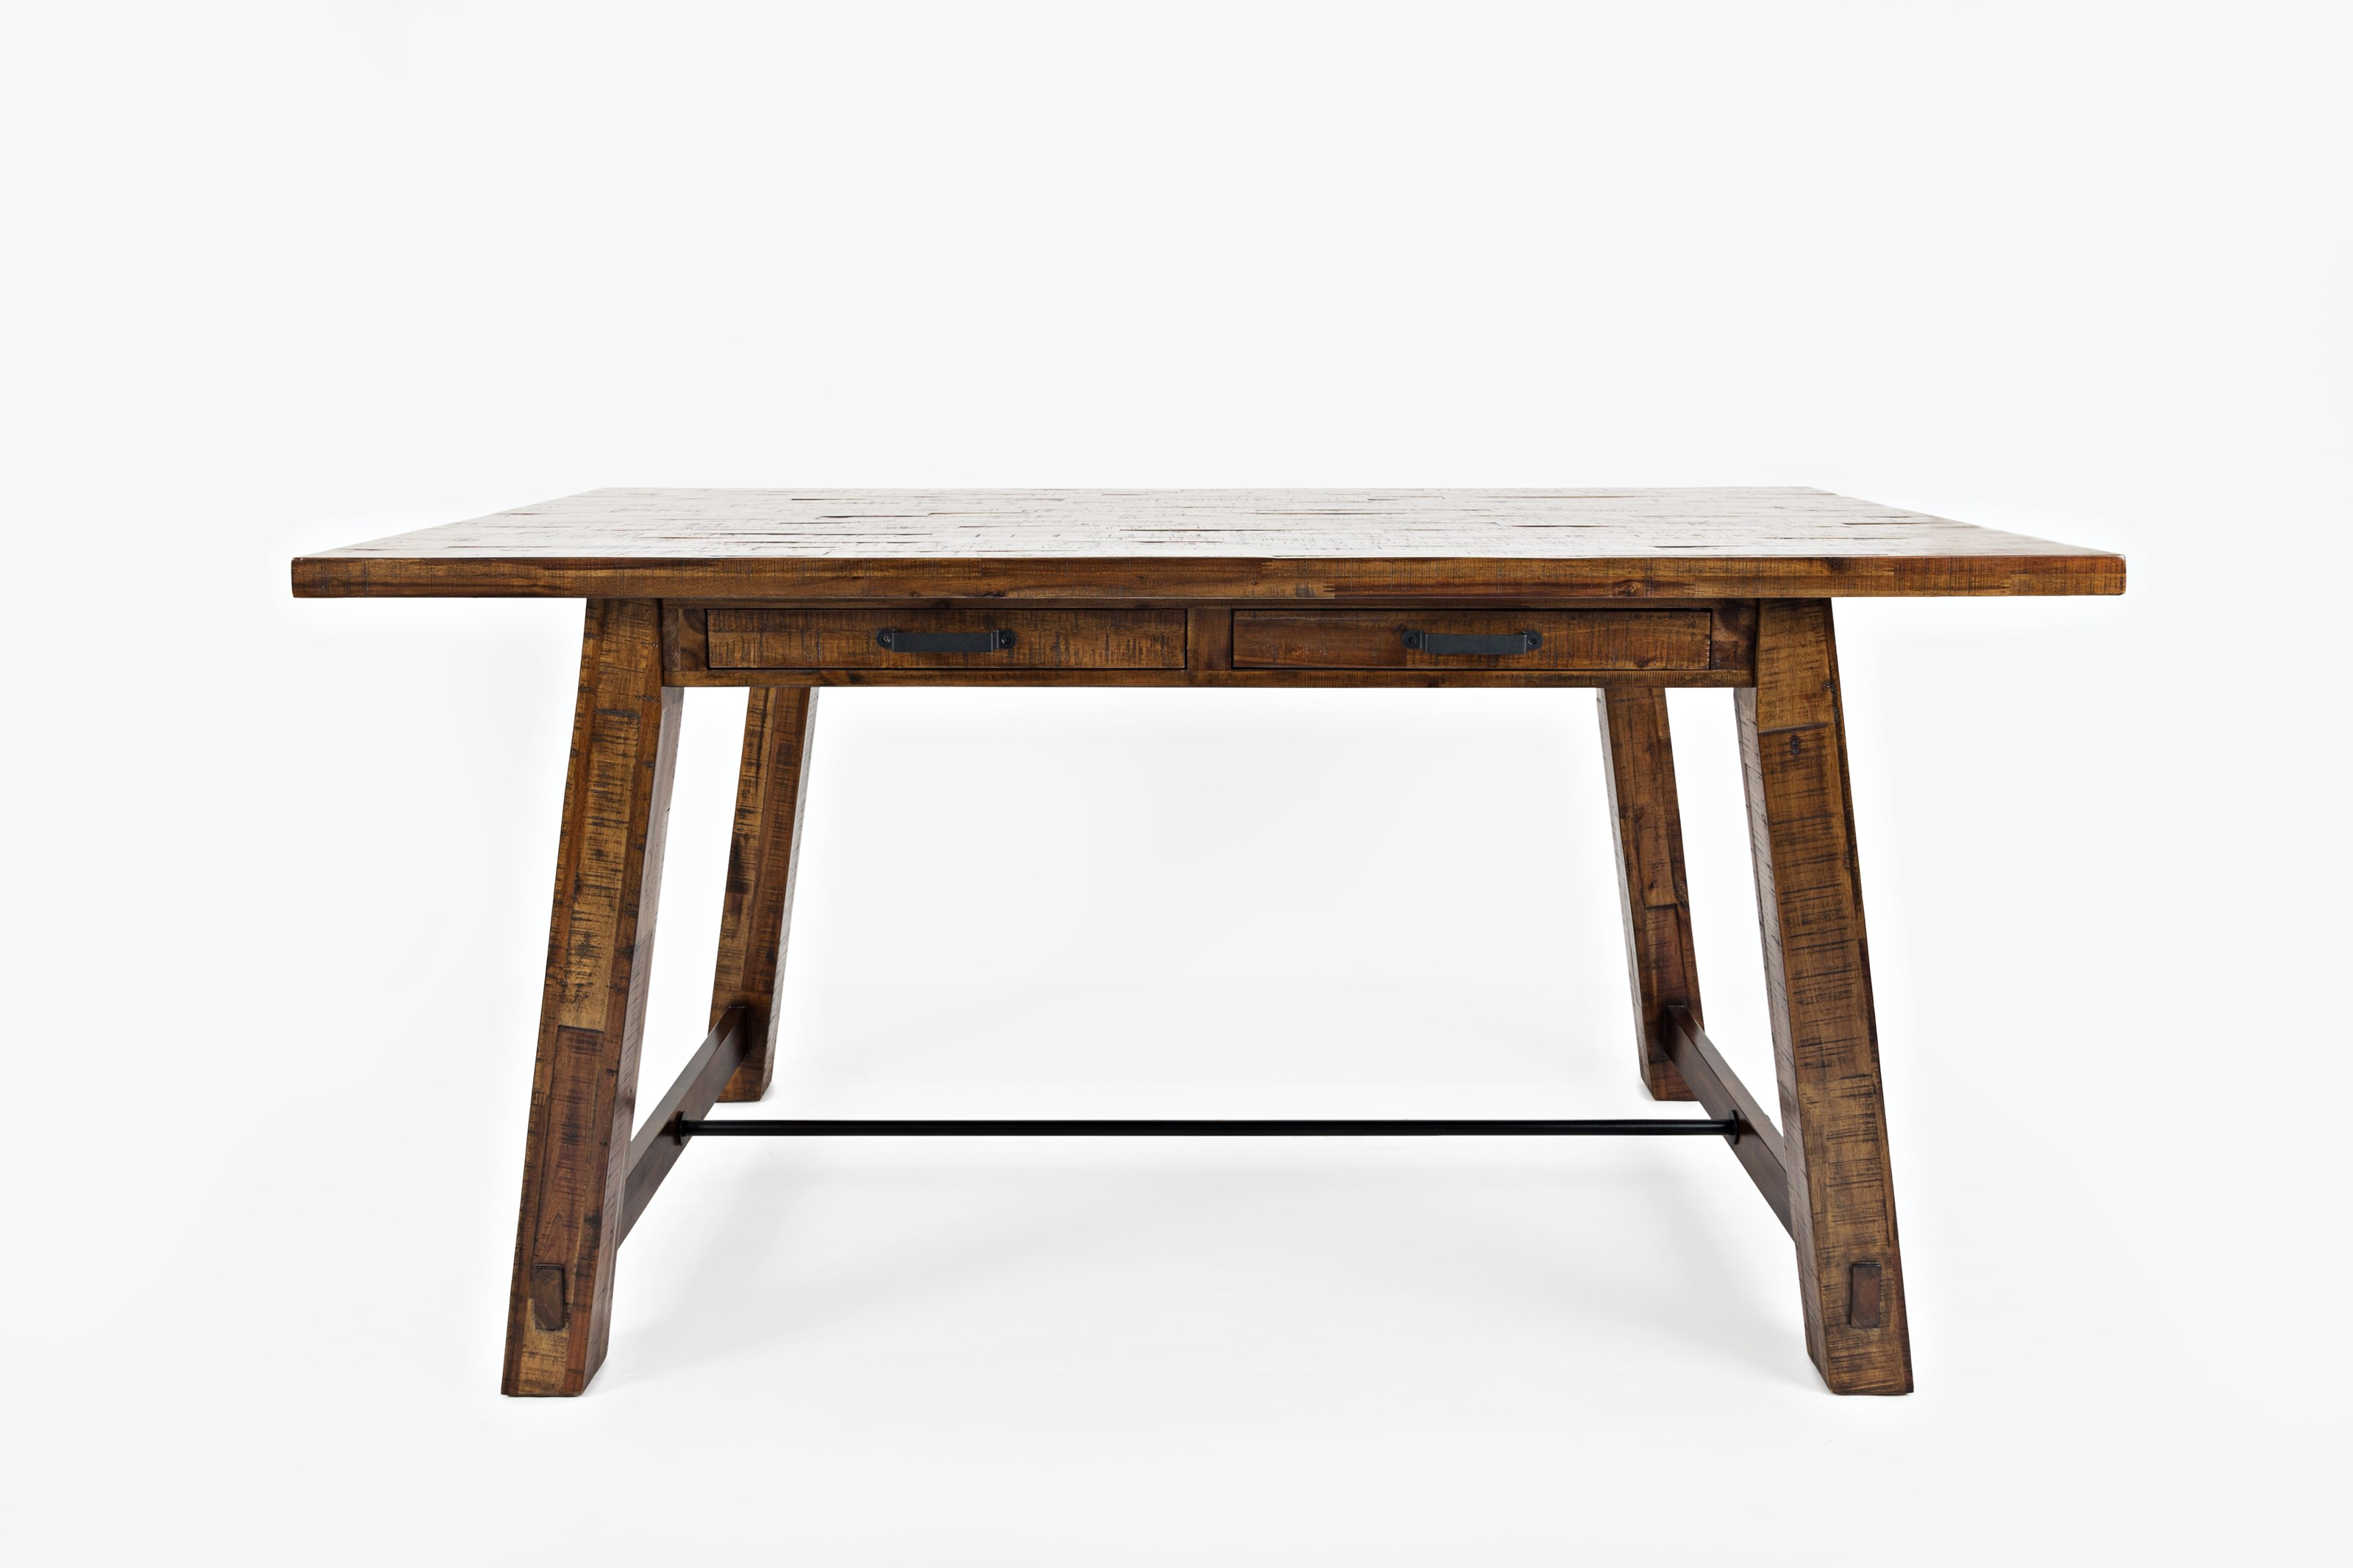 Jofran Cannon Valley Counter Top Trestle Table Vandrie